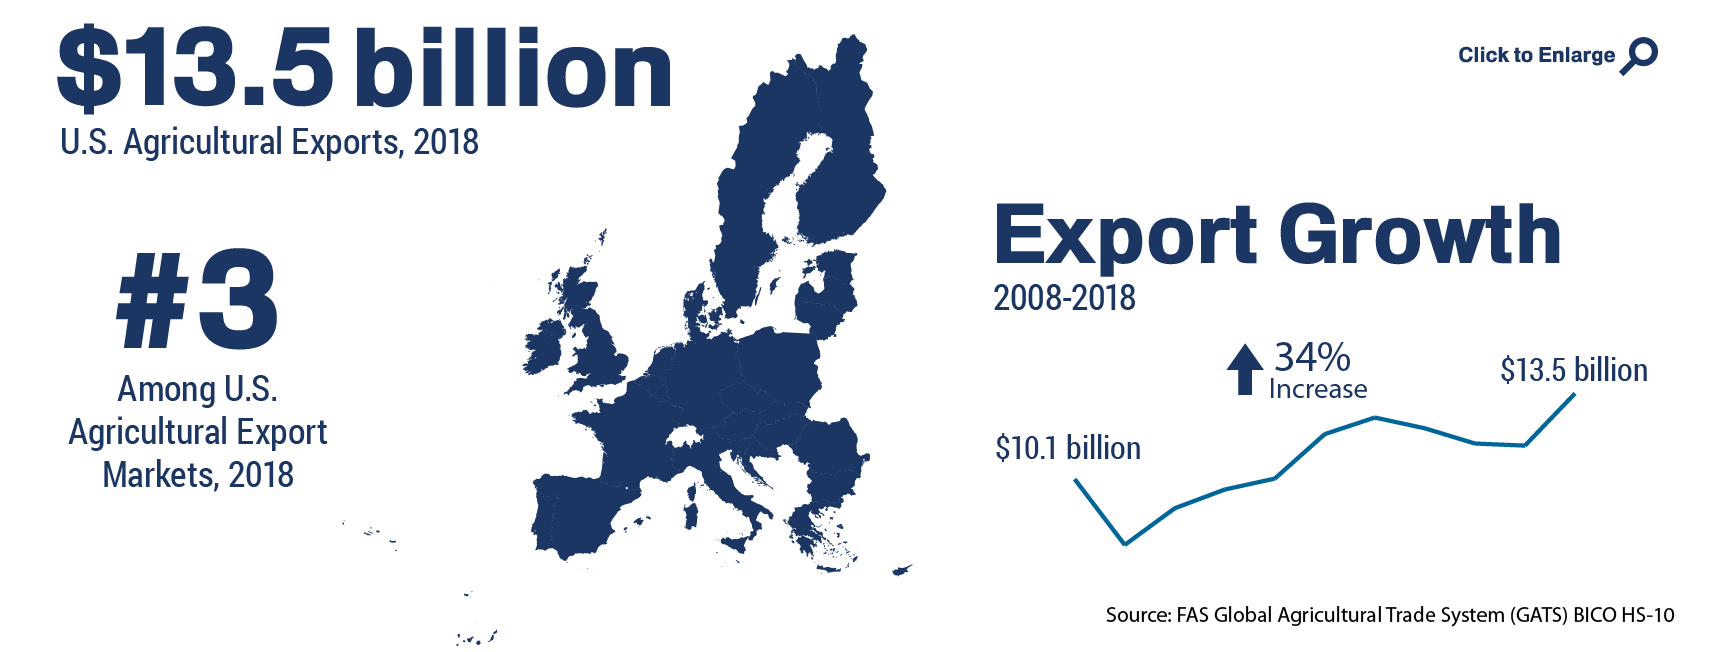 Infographic showing the ranking and total of U.S. agricultural trade to European Union in 2018